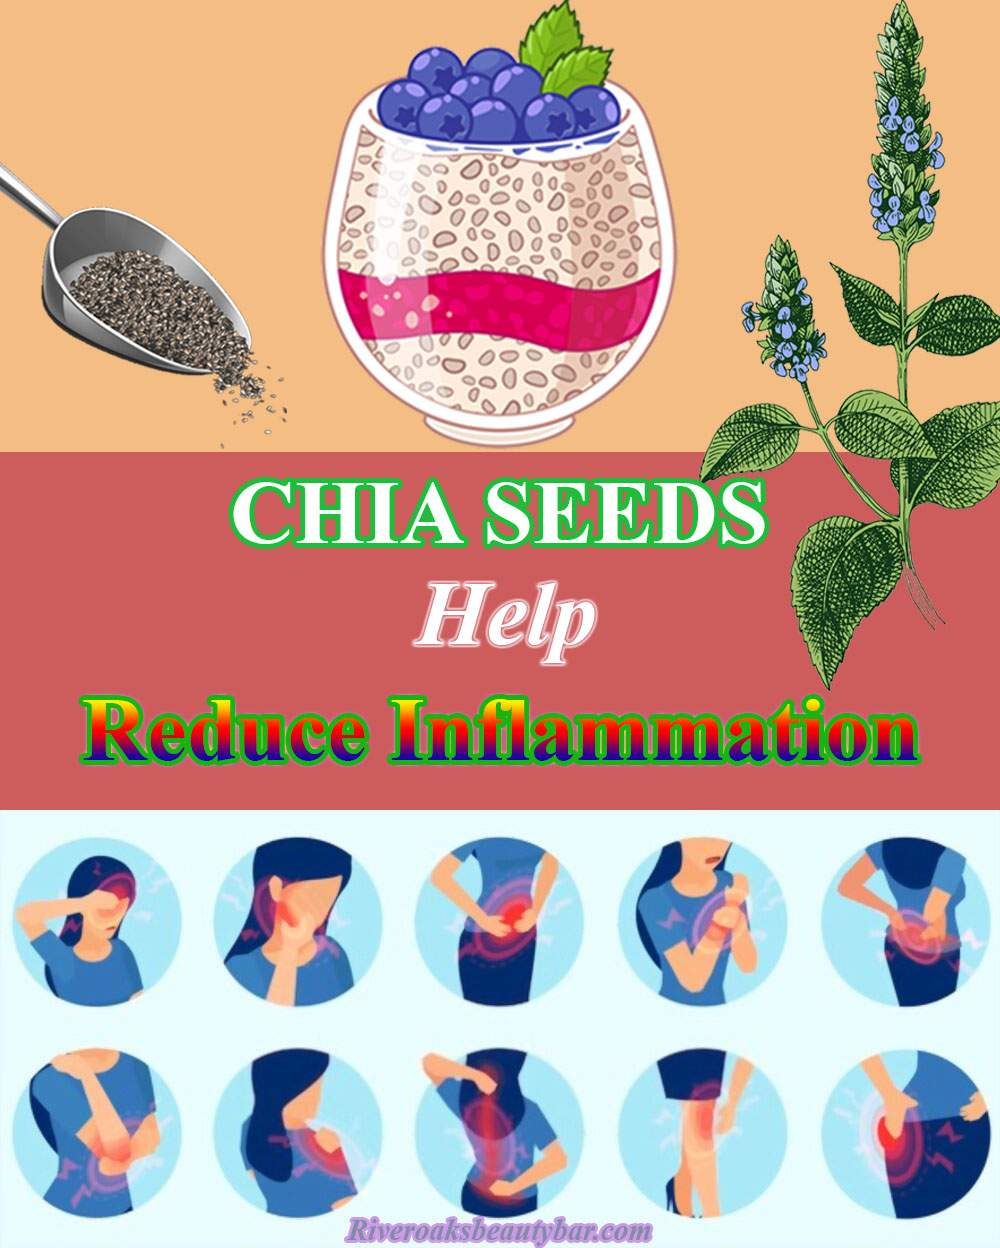 Chia Seeds Help Reduce Inflammation